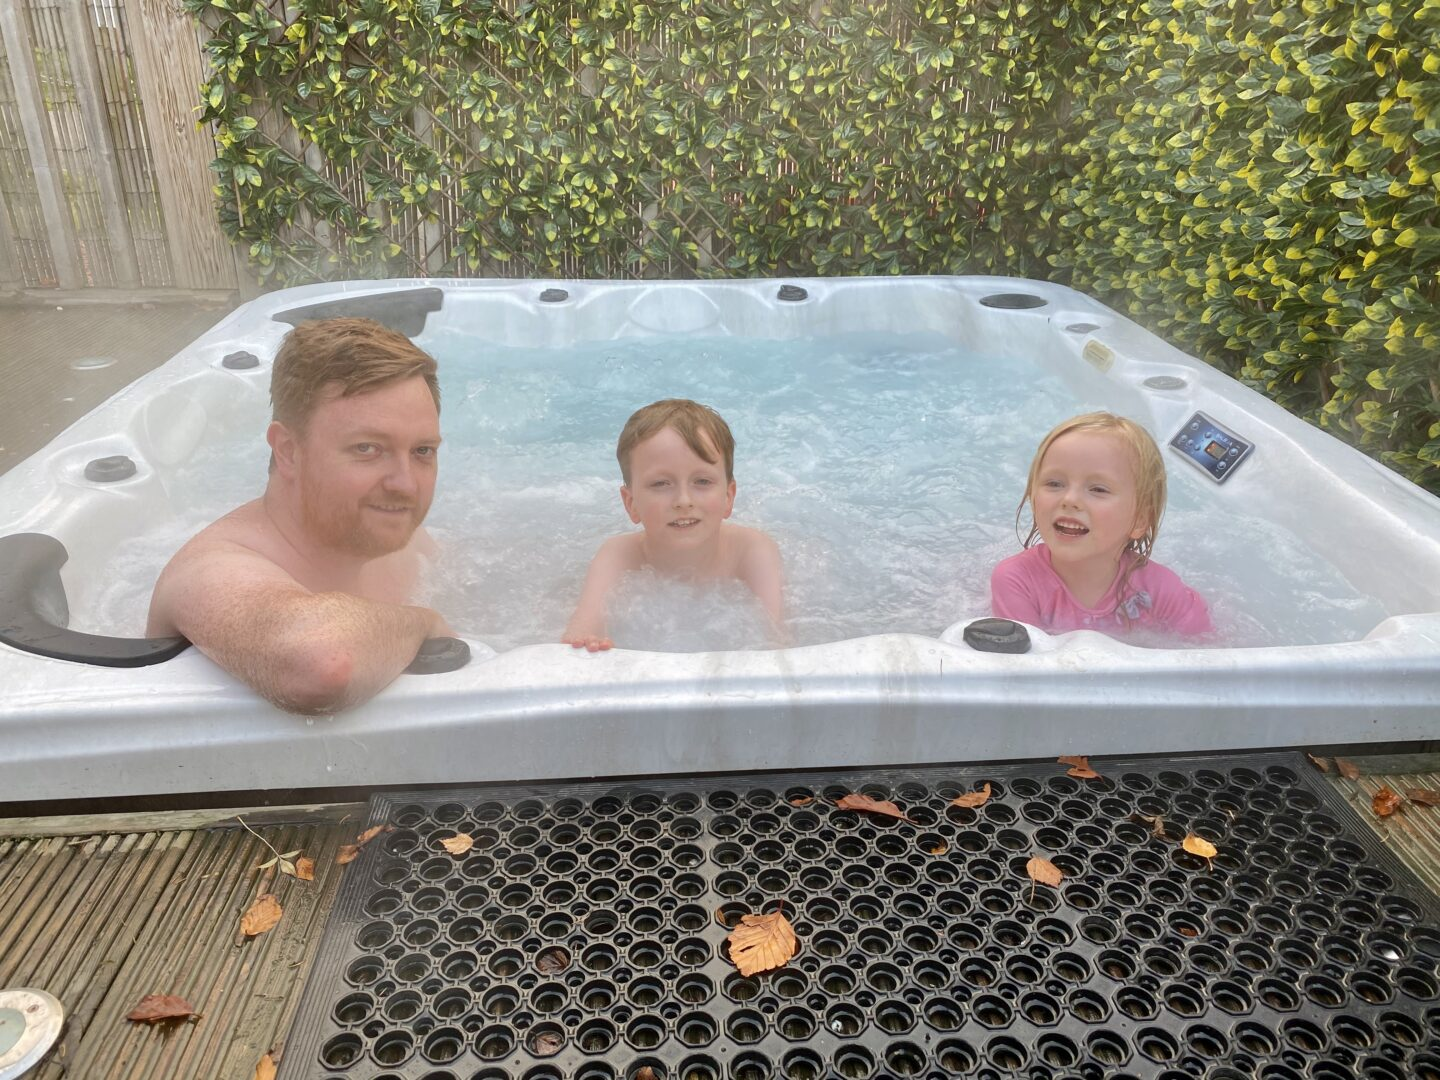 Father, boy and girl in a hot tub